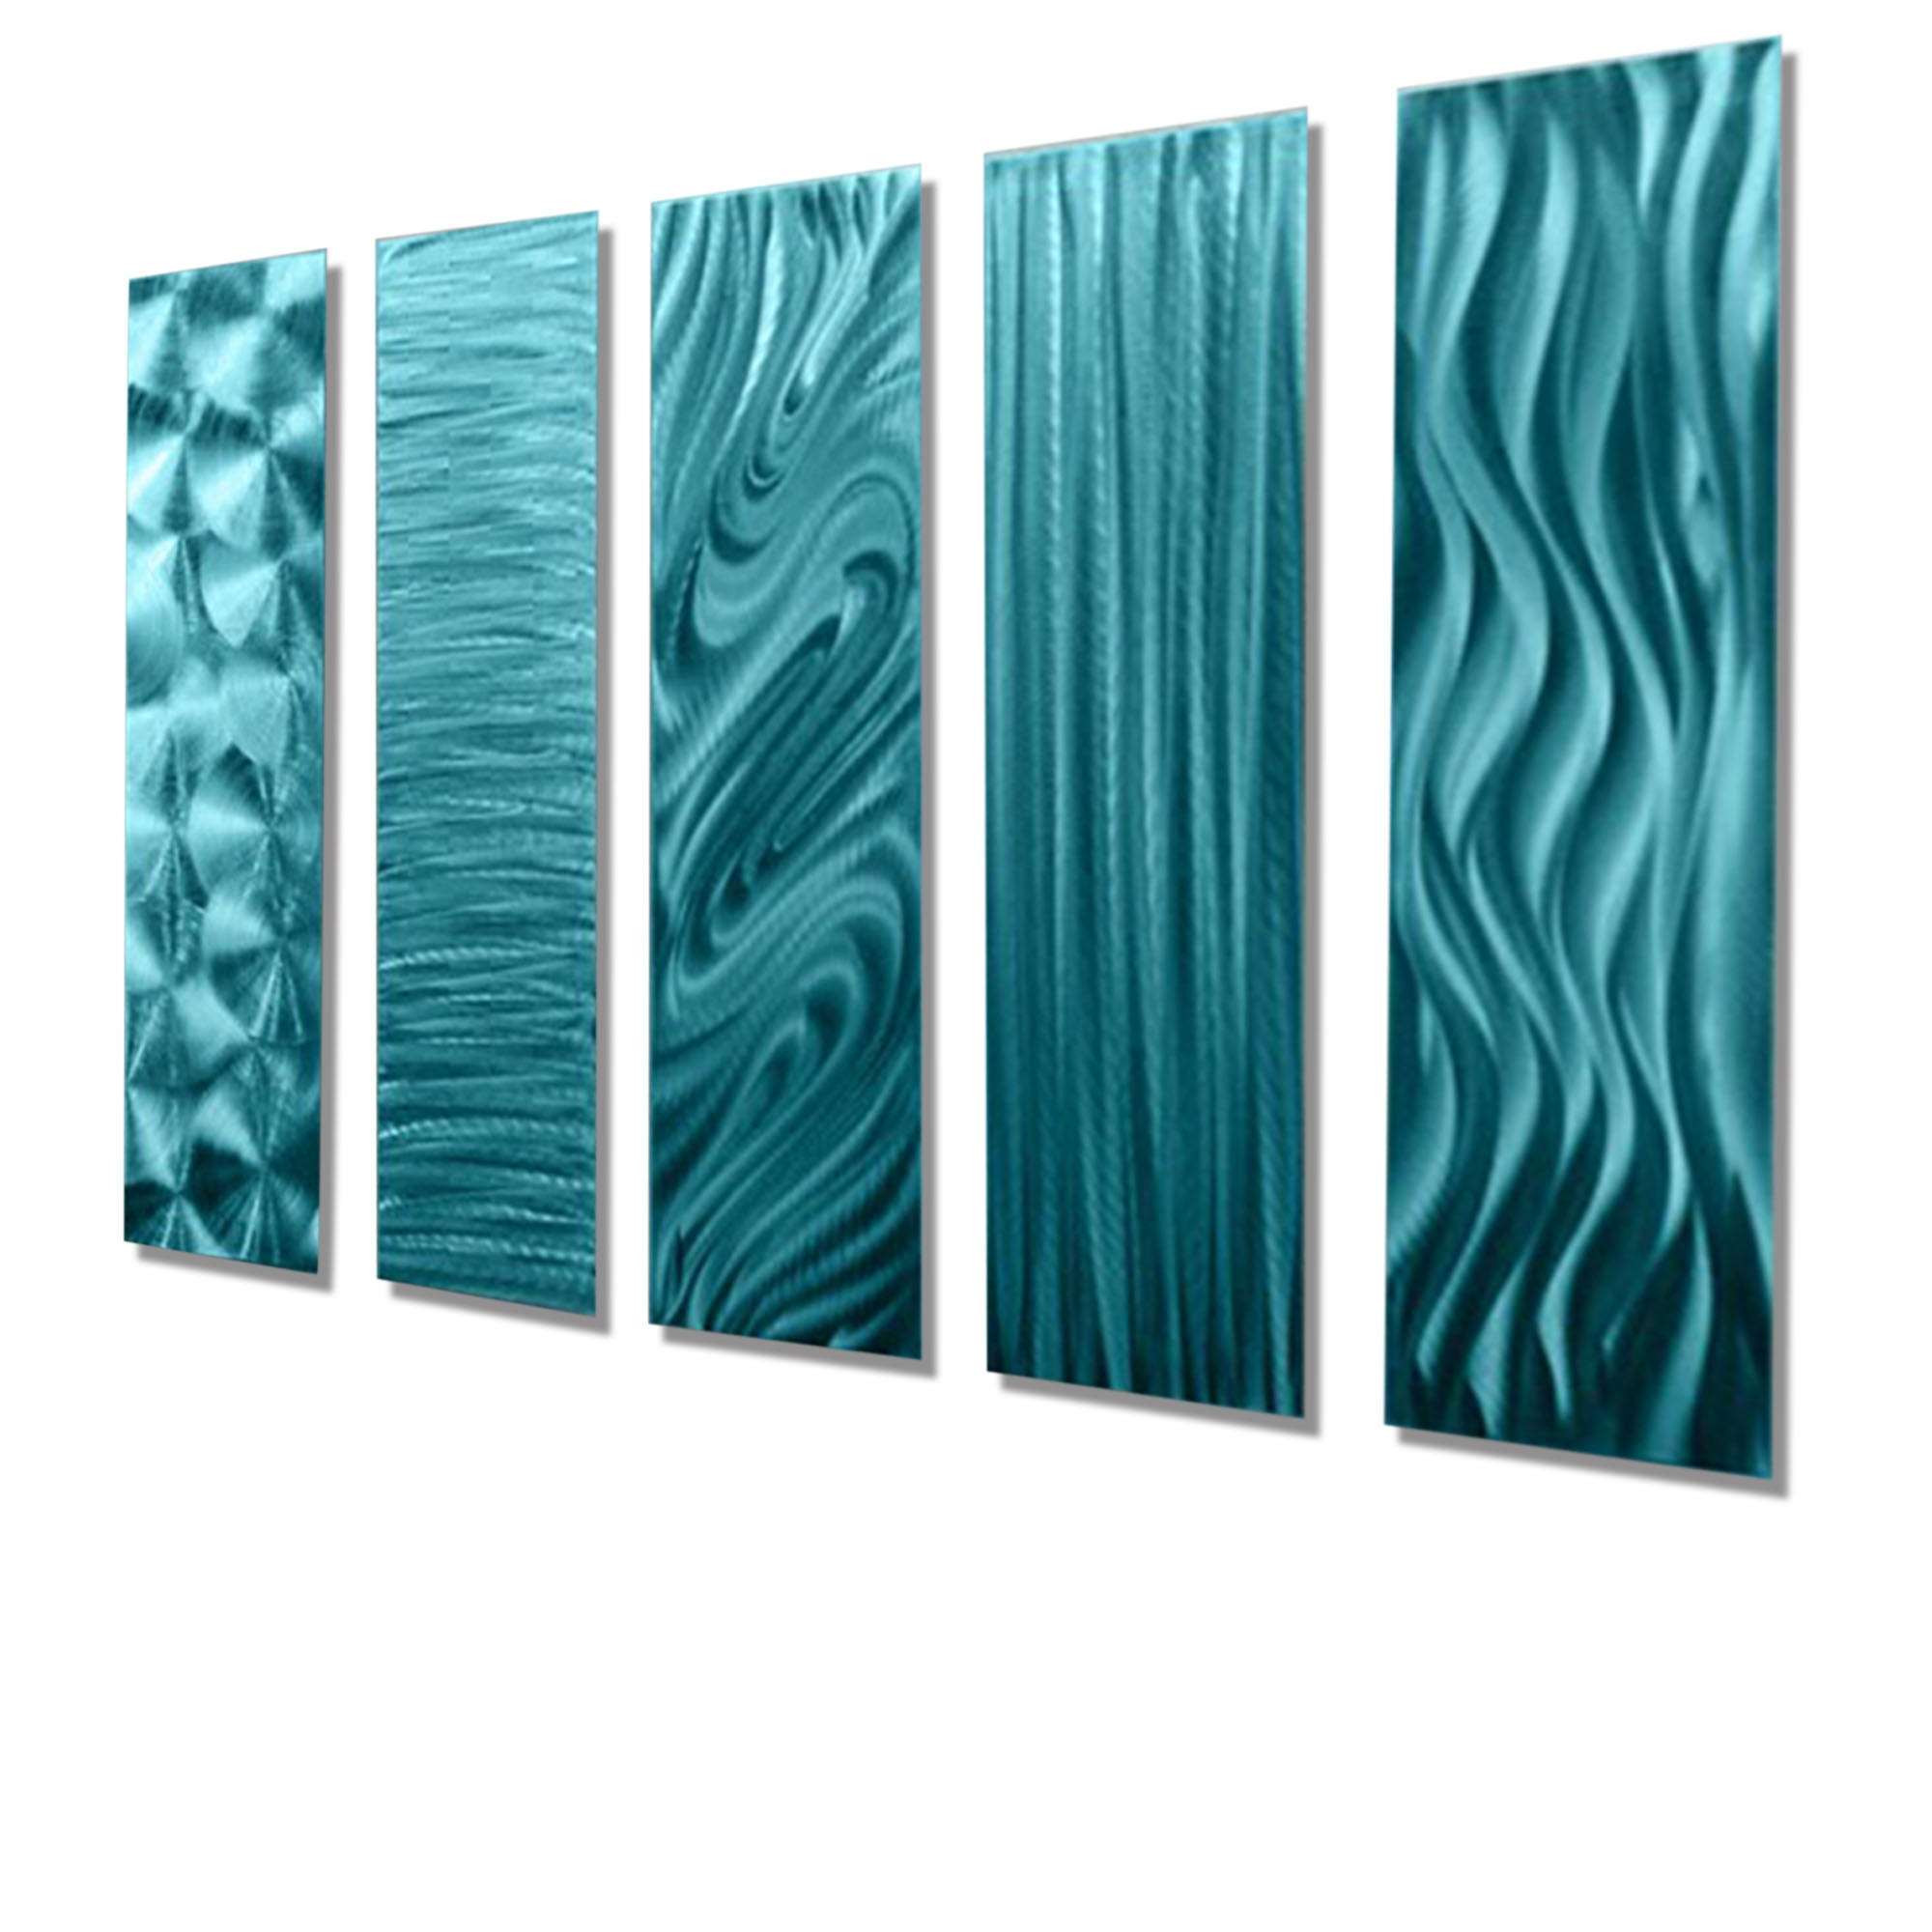 "Most Recently Released 5 Easy Pieces Aqua – Set Of Five 24"" X 6"" Metal Wall Art Accents Intended For Contemporary Wall Art (View 10 of 15)"